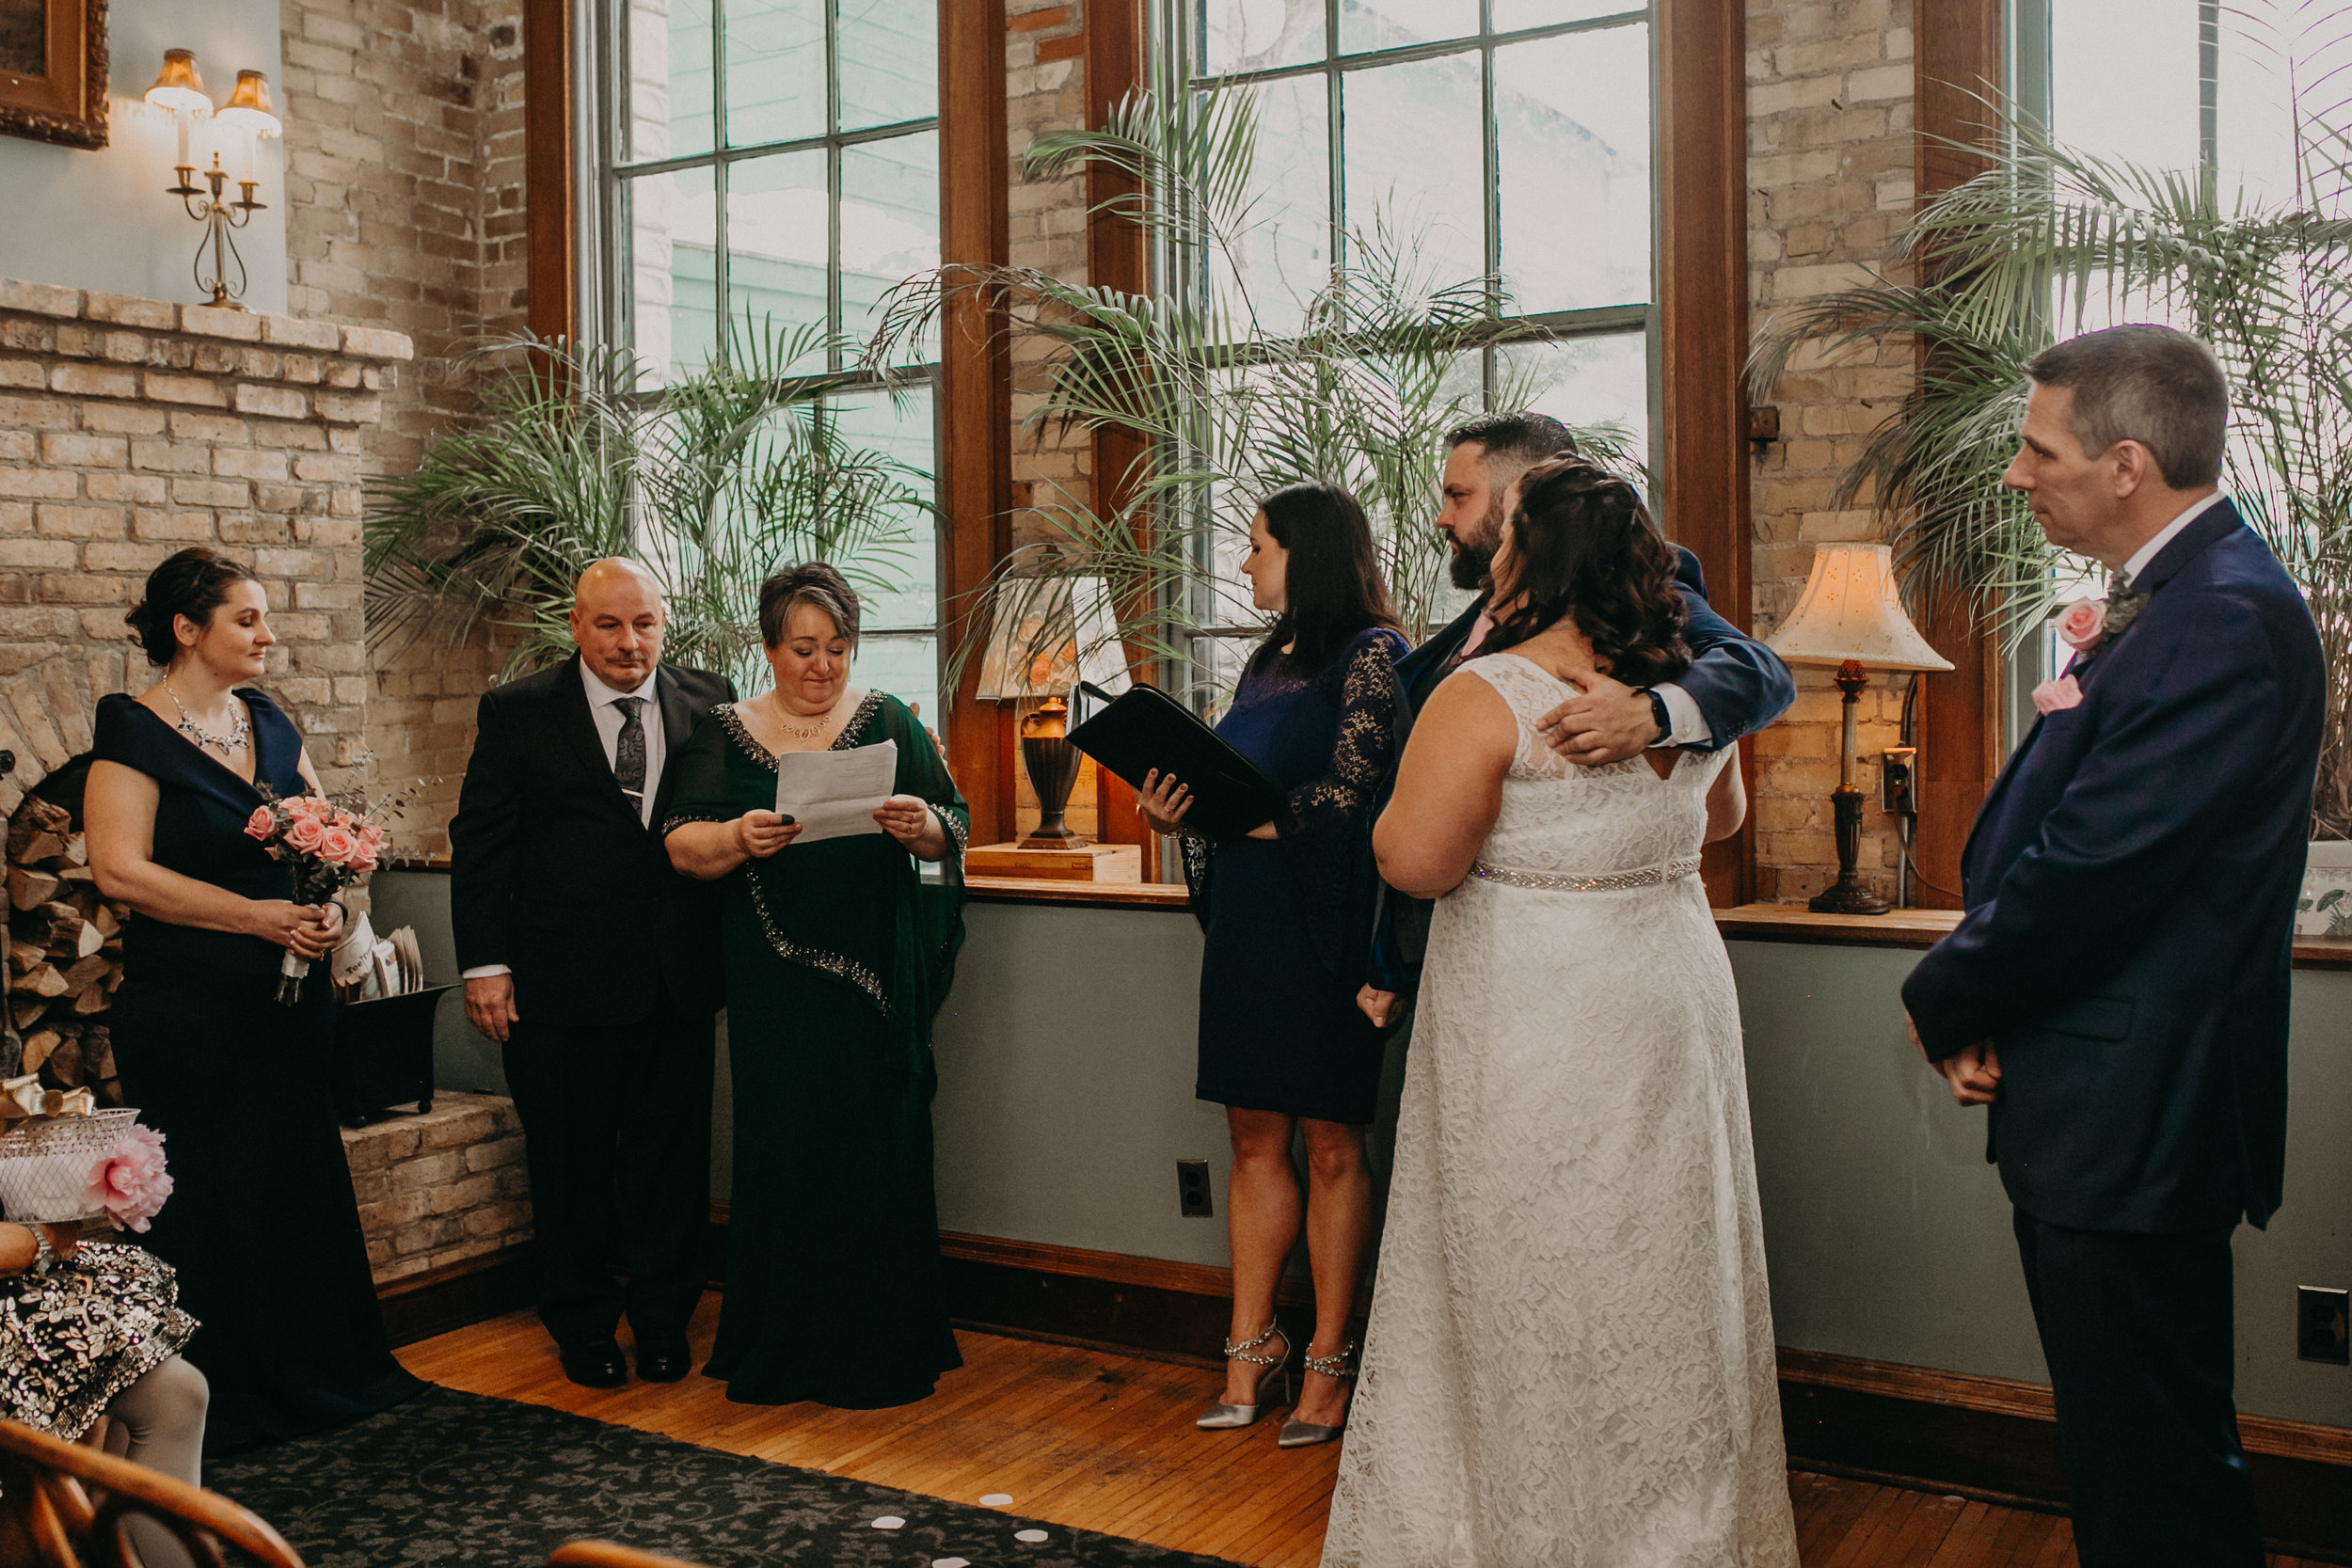 Intimate_Wedding_St_Paul_MN_WA_Frost_Sweeneys_Andrea_Wagner_Photography (49 of 99).jpg